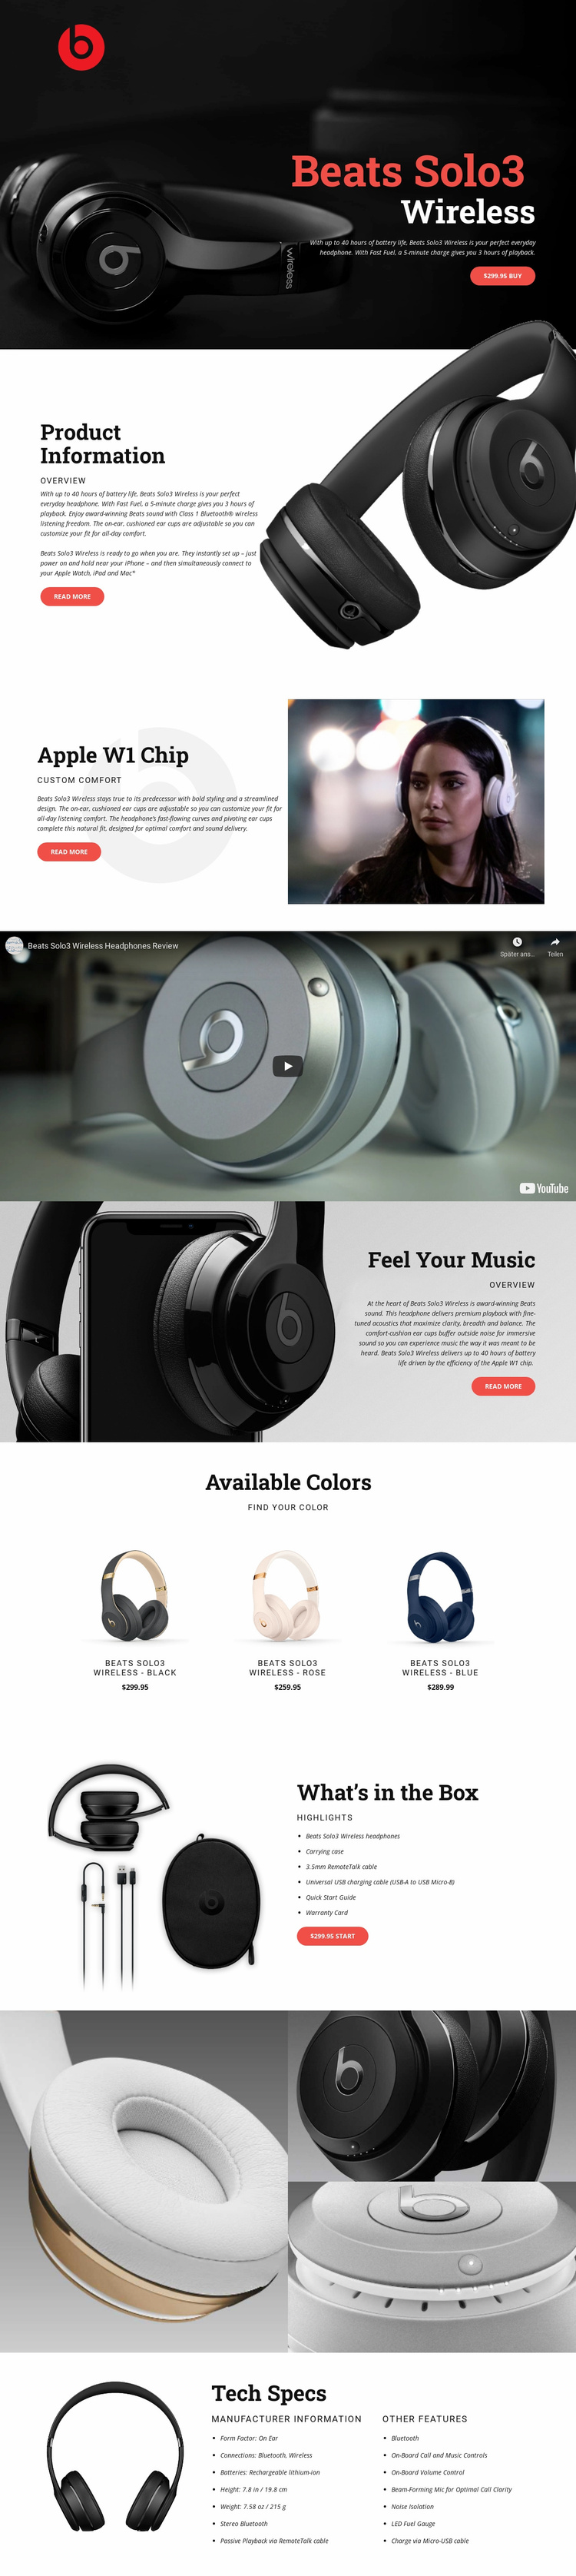 Outstanding quality of music Landing Page